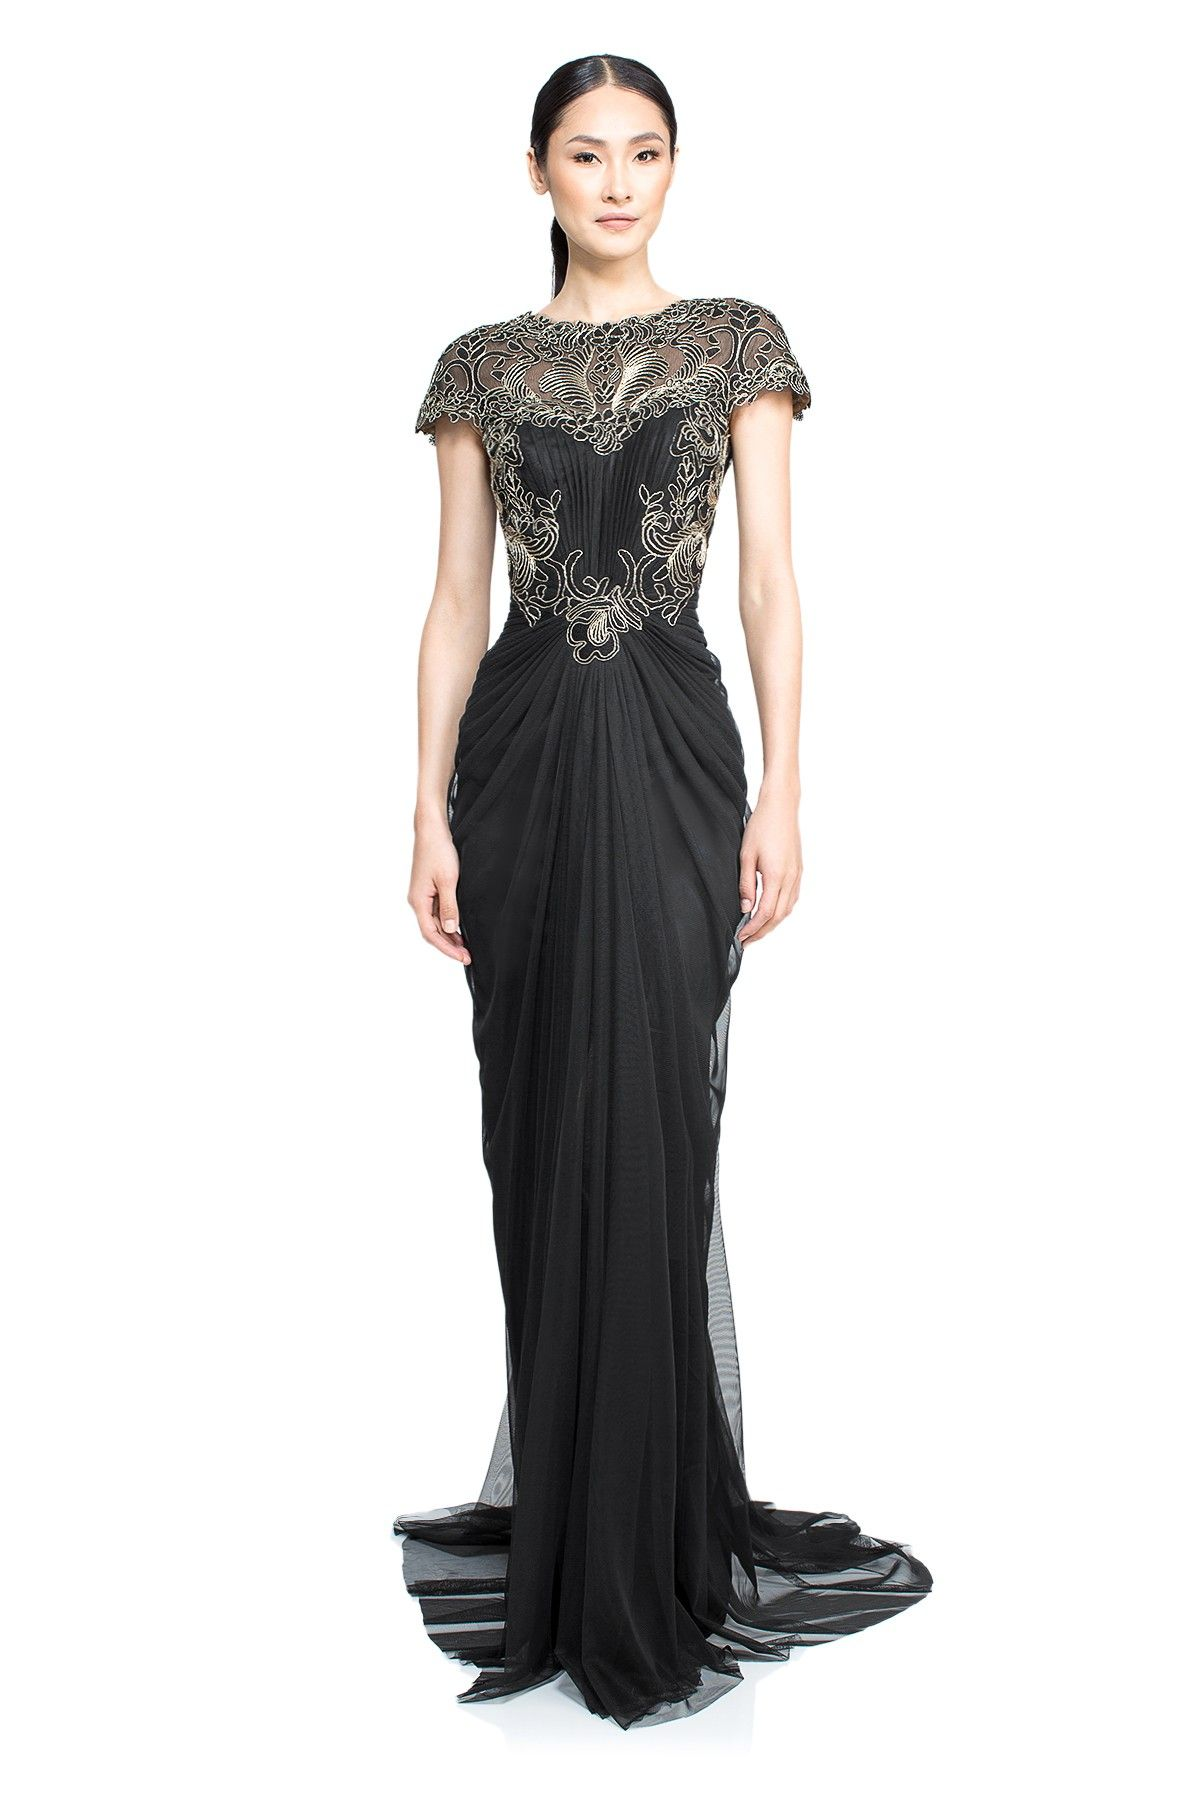 Corded Lace And Draped Tulle Gown Tadashi Shoji Black Tie Wedding Guest Dress Black Wedding Guest Dresses Black Tie Dress Wedding [ 1800 x 1200 Pixel ]